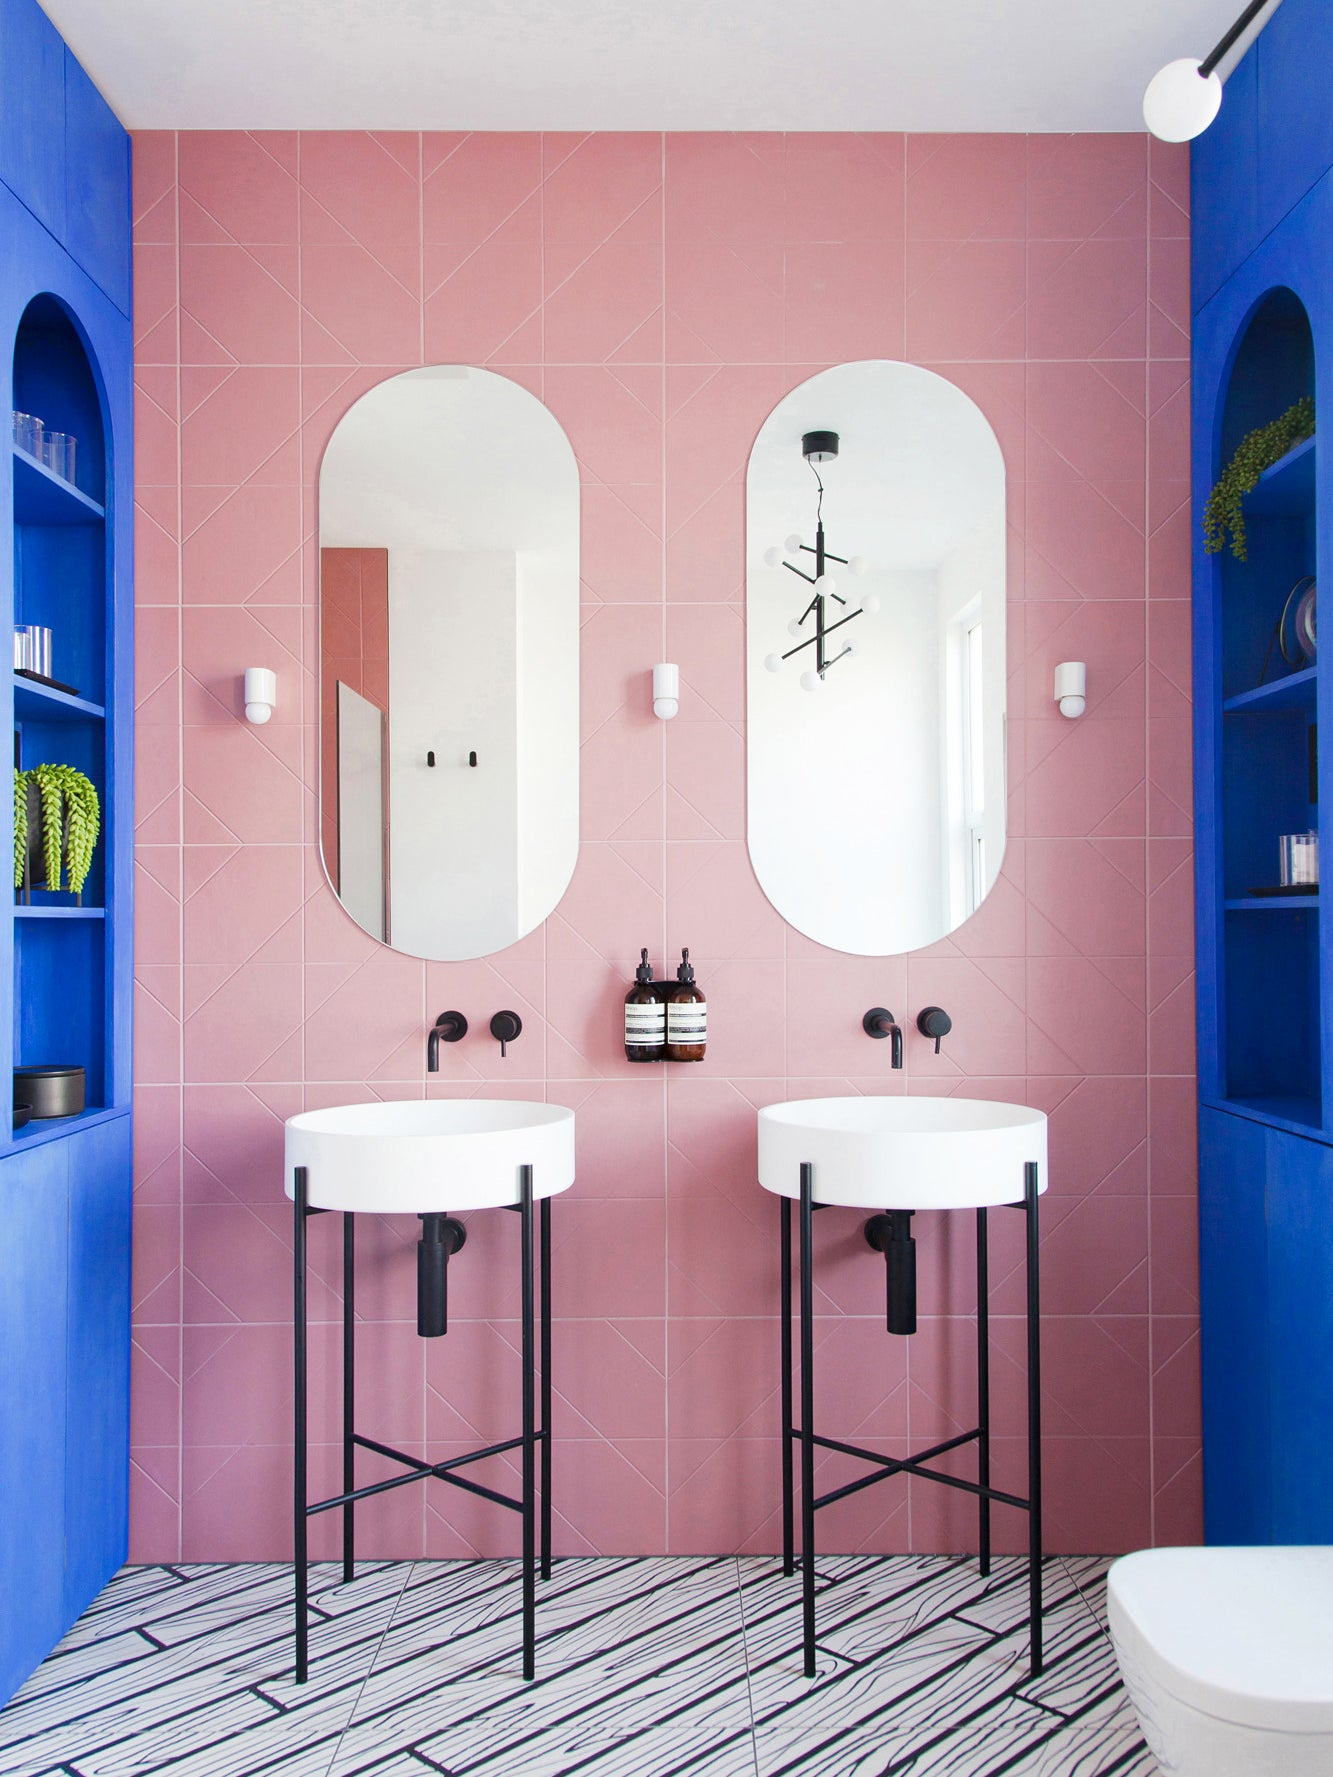 4 Bathroom Accent Wall Ideas Because